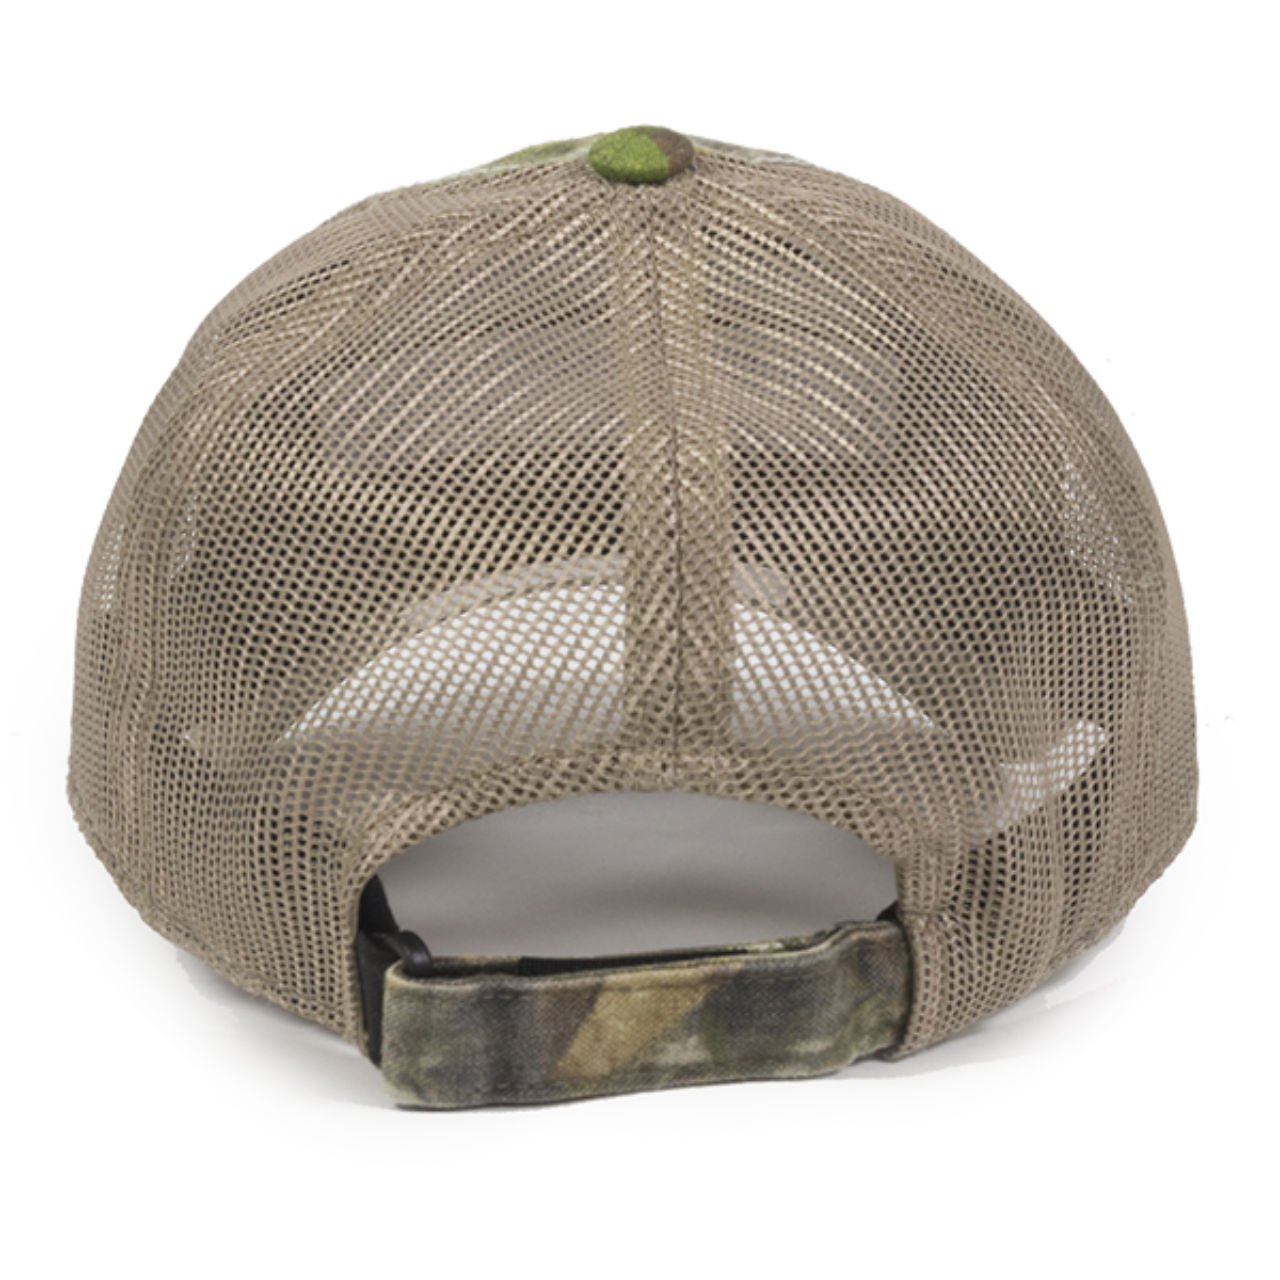 Outdoor Cap NWTF Mossy Oak Obsession National Wild Turkey Federation Camo Mesh Back Hunting Hat by Outdoor Cap (Image #1)